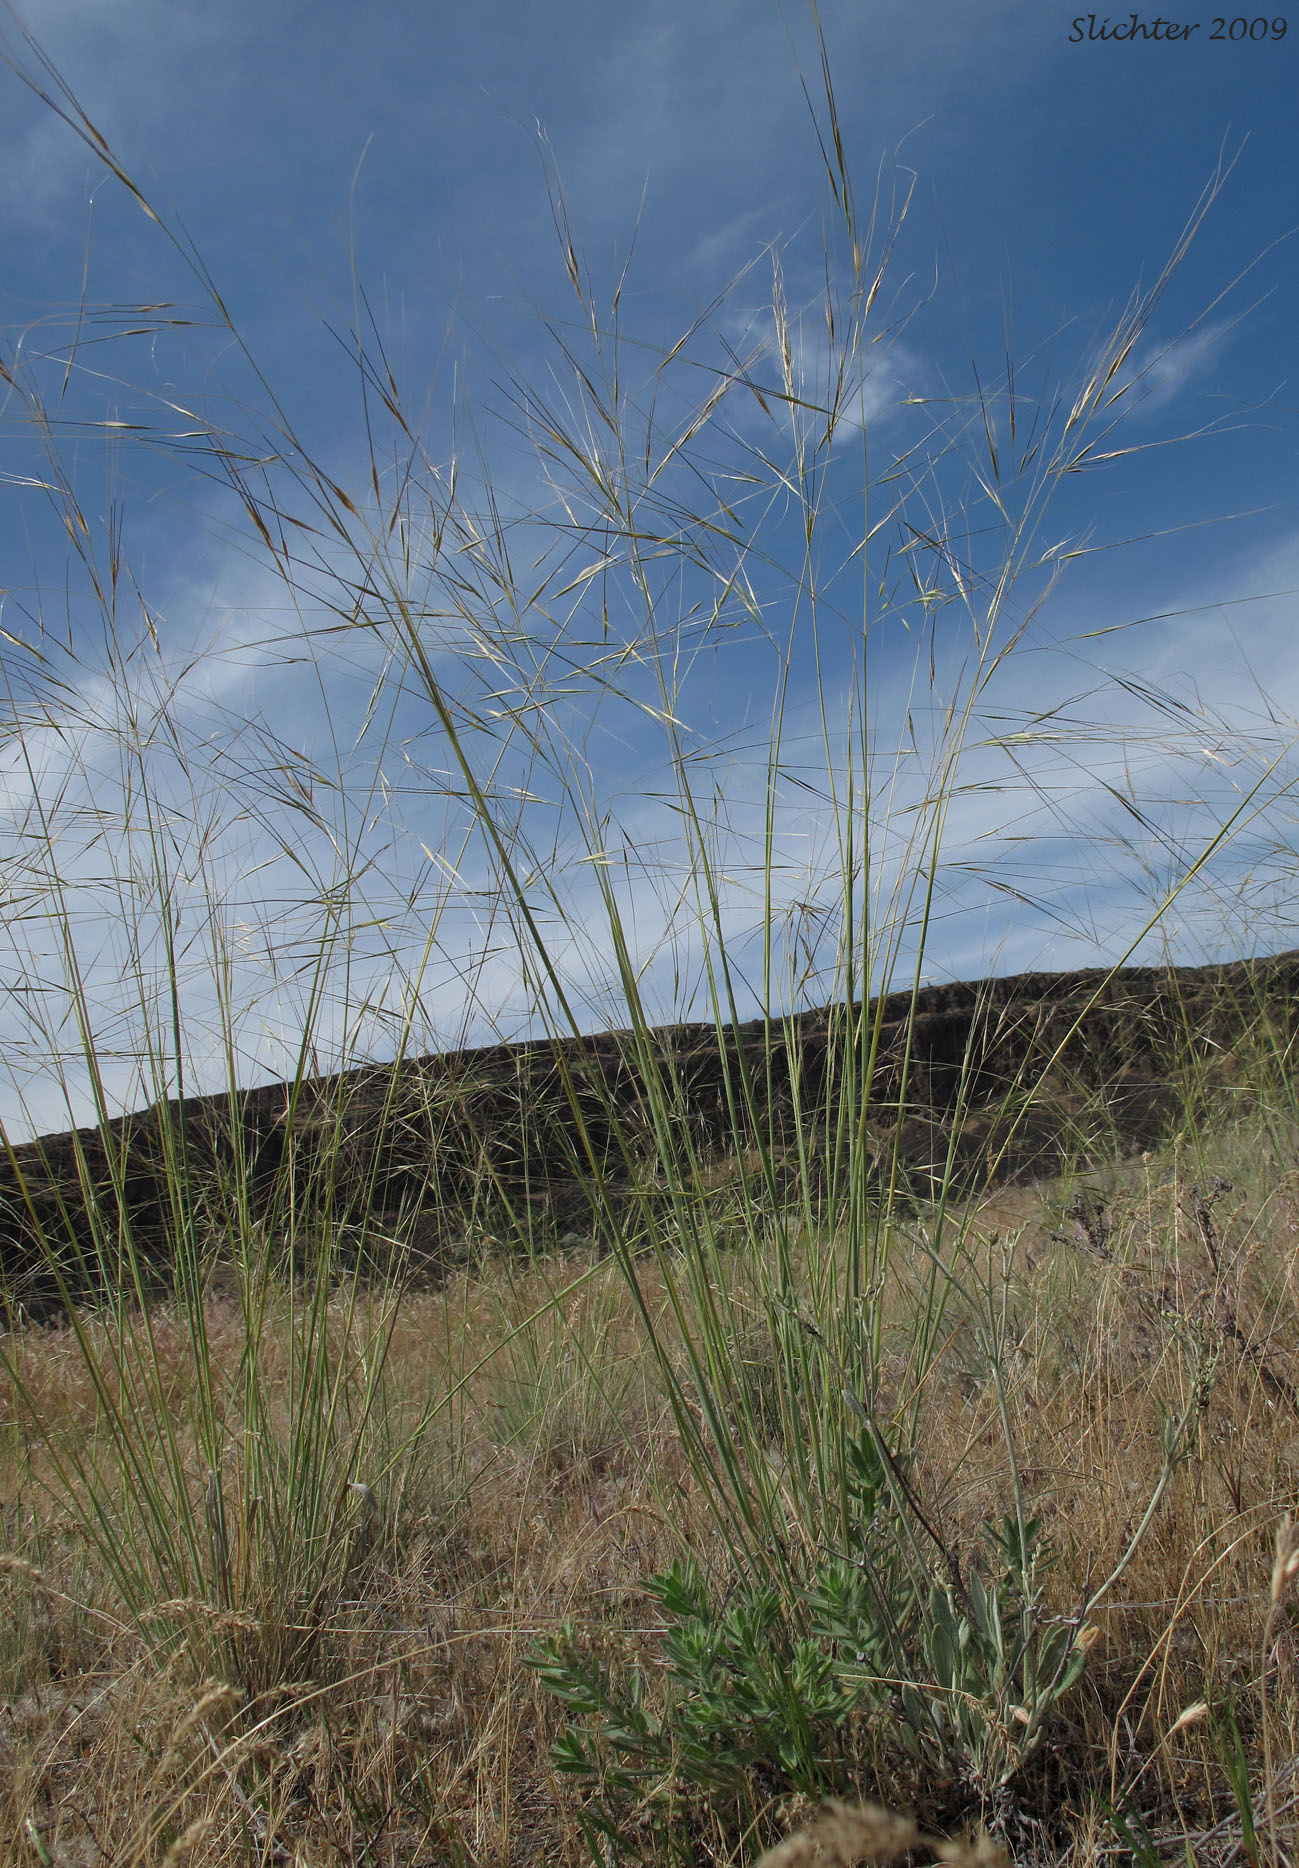 Needle and thread grass as Needle And Thread Grass